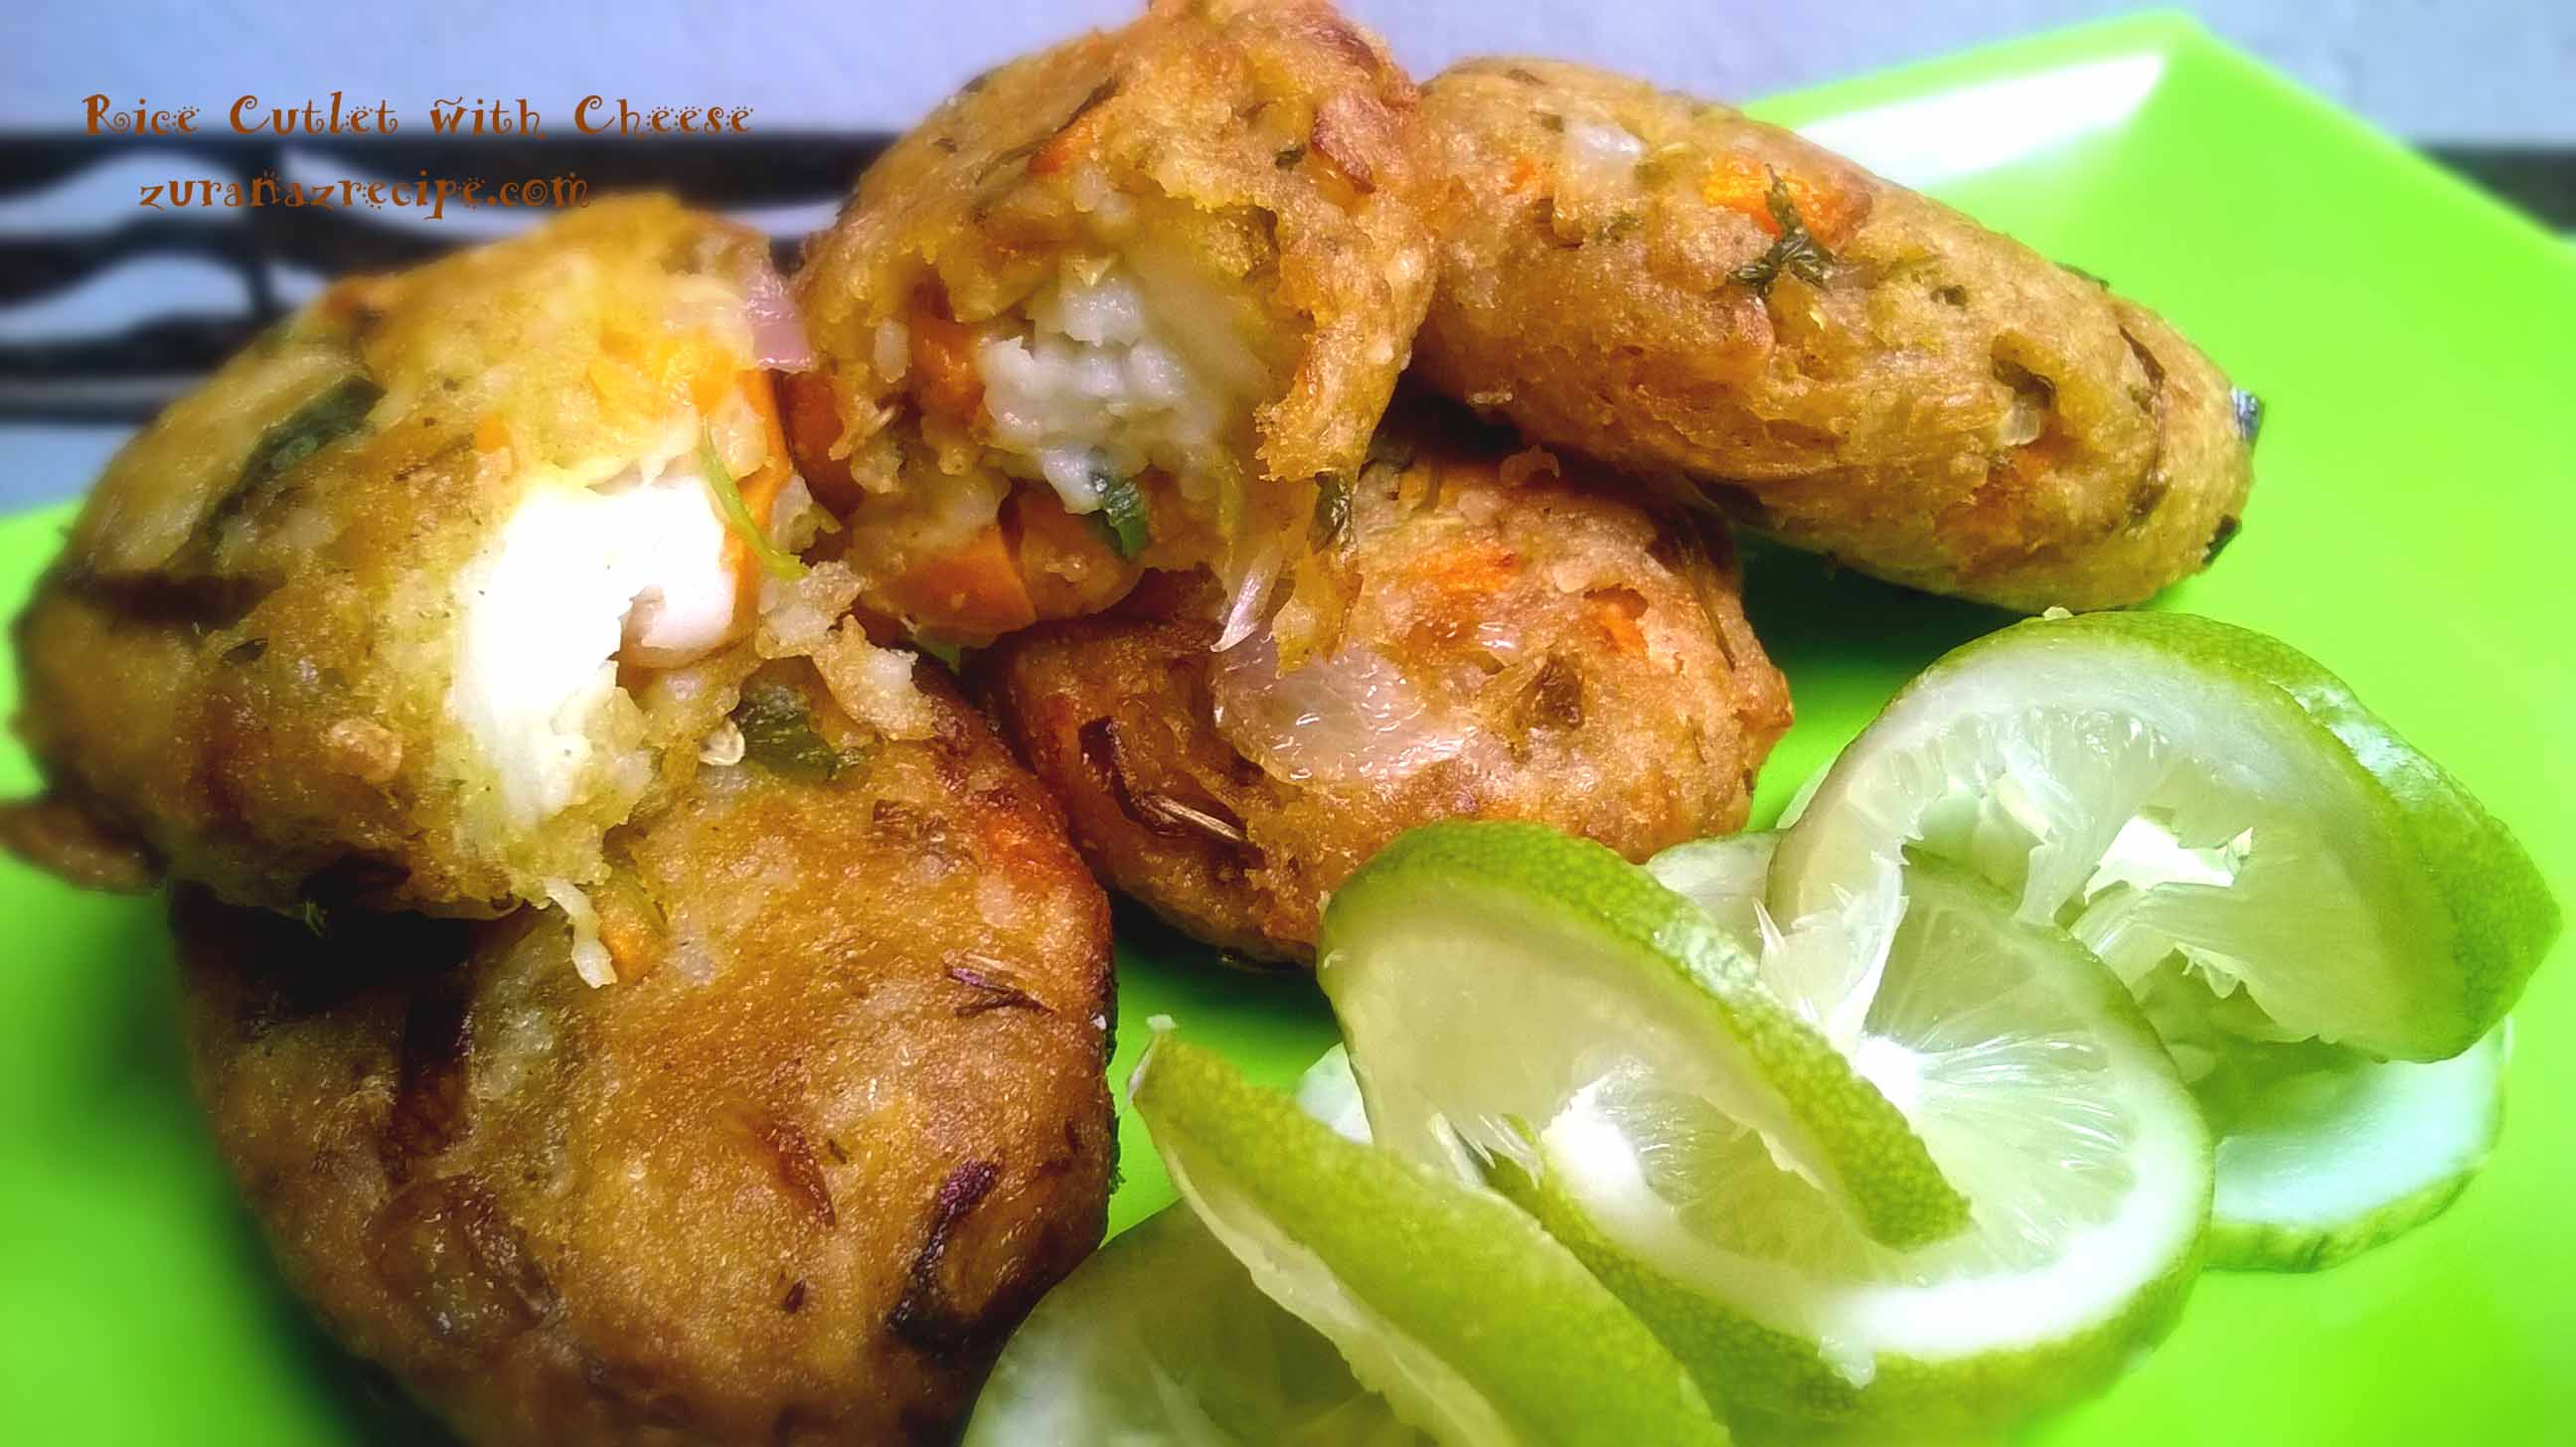 Rice Cutlet with Cheese